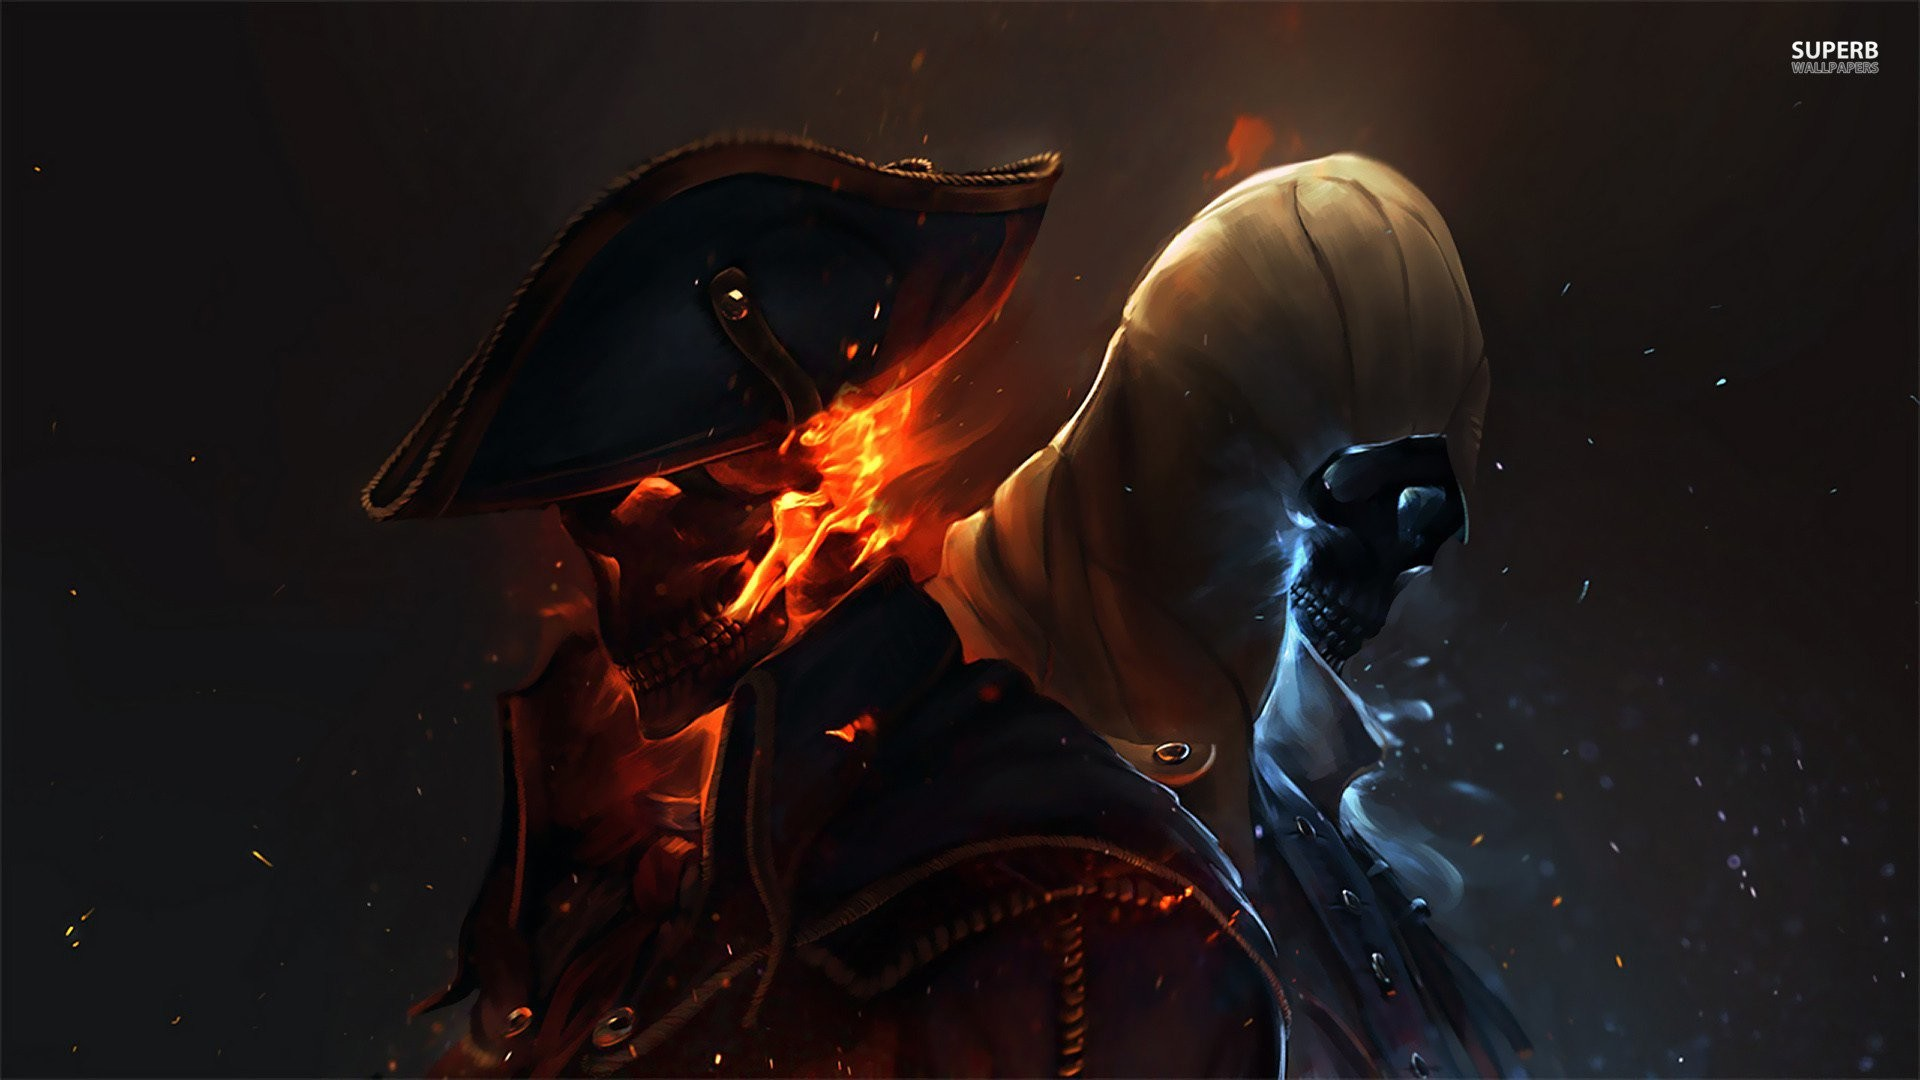 Edward Kenway in Assassin's Creed 4 wallpapers (75 Wallpapers) – HD  Wallpapers